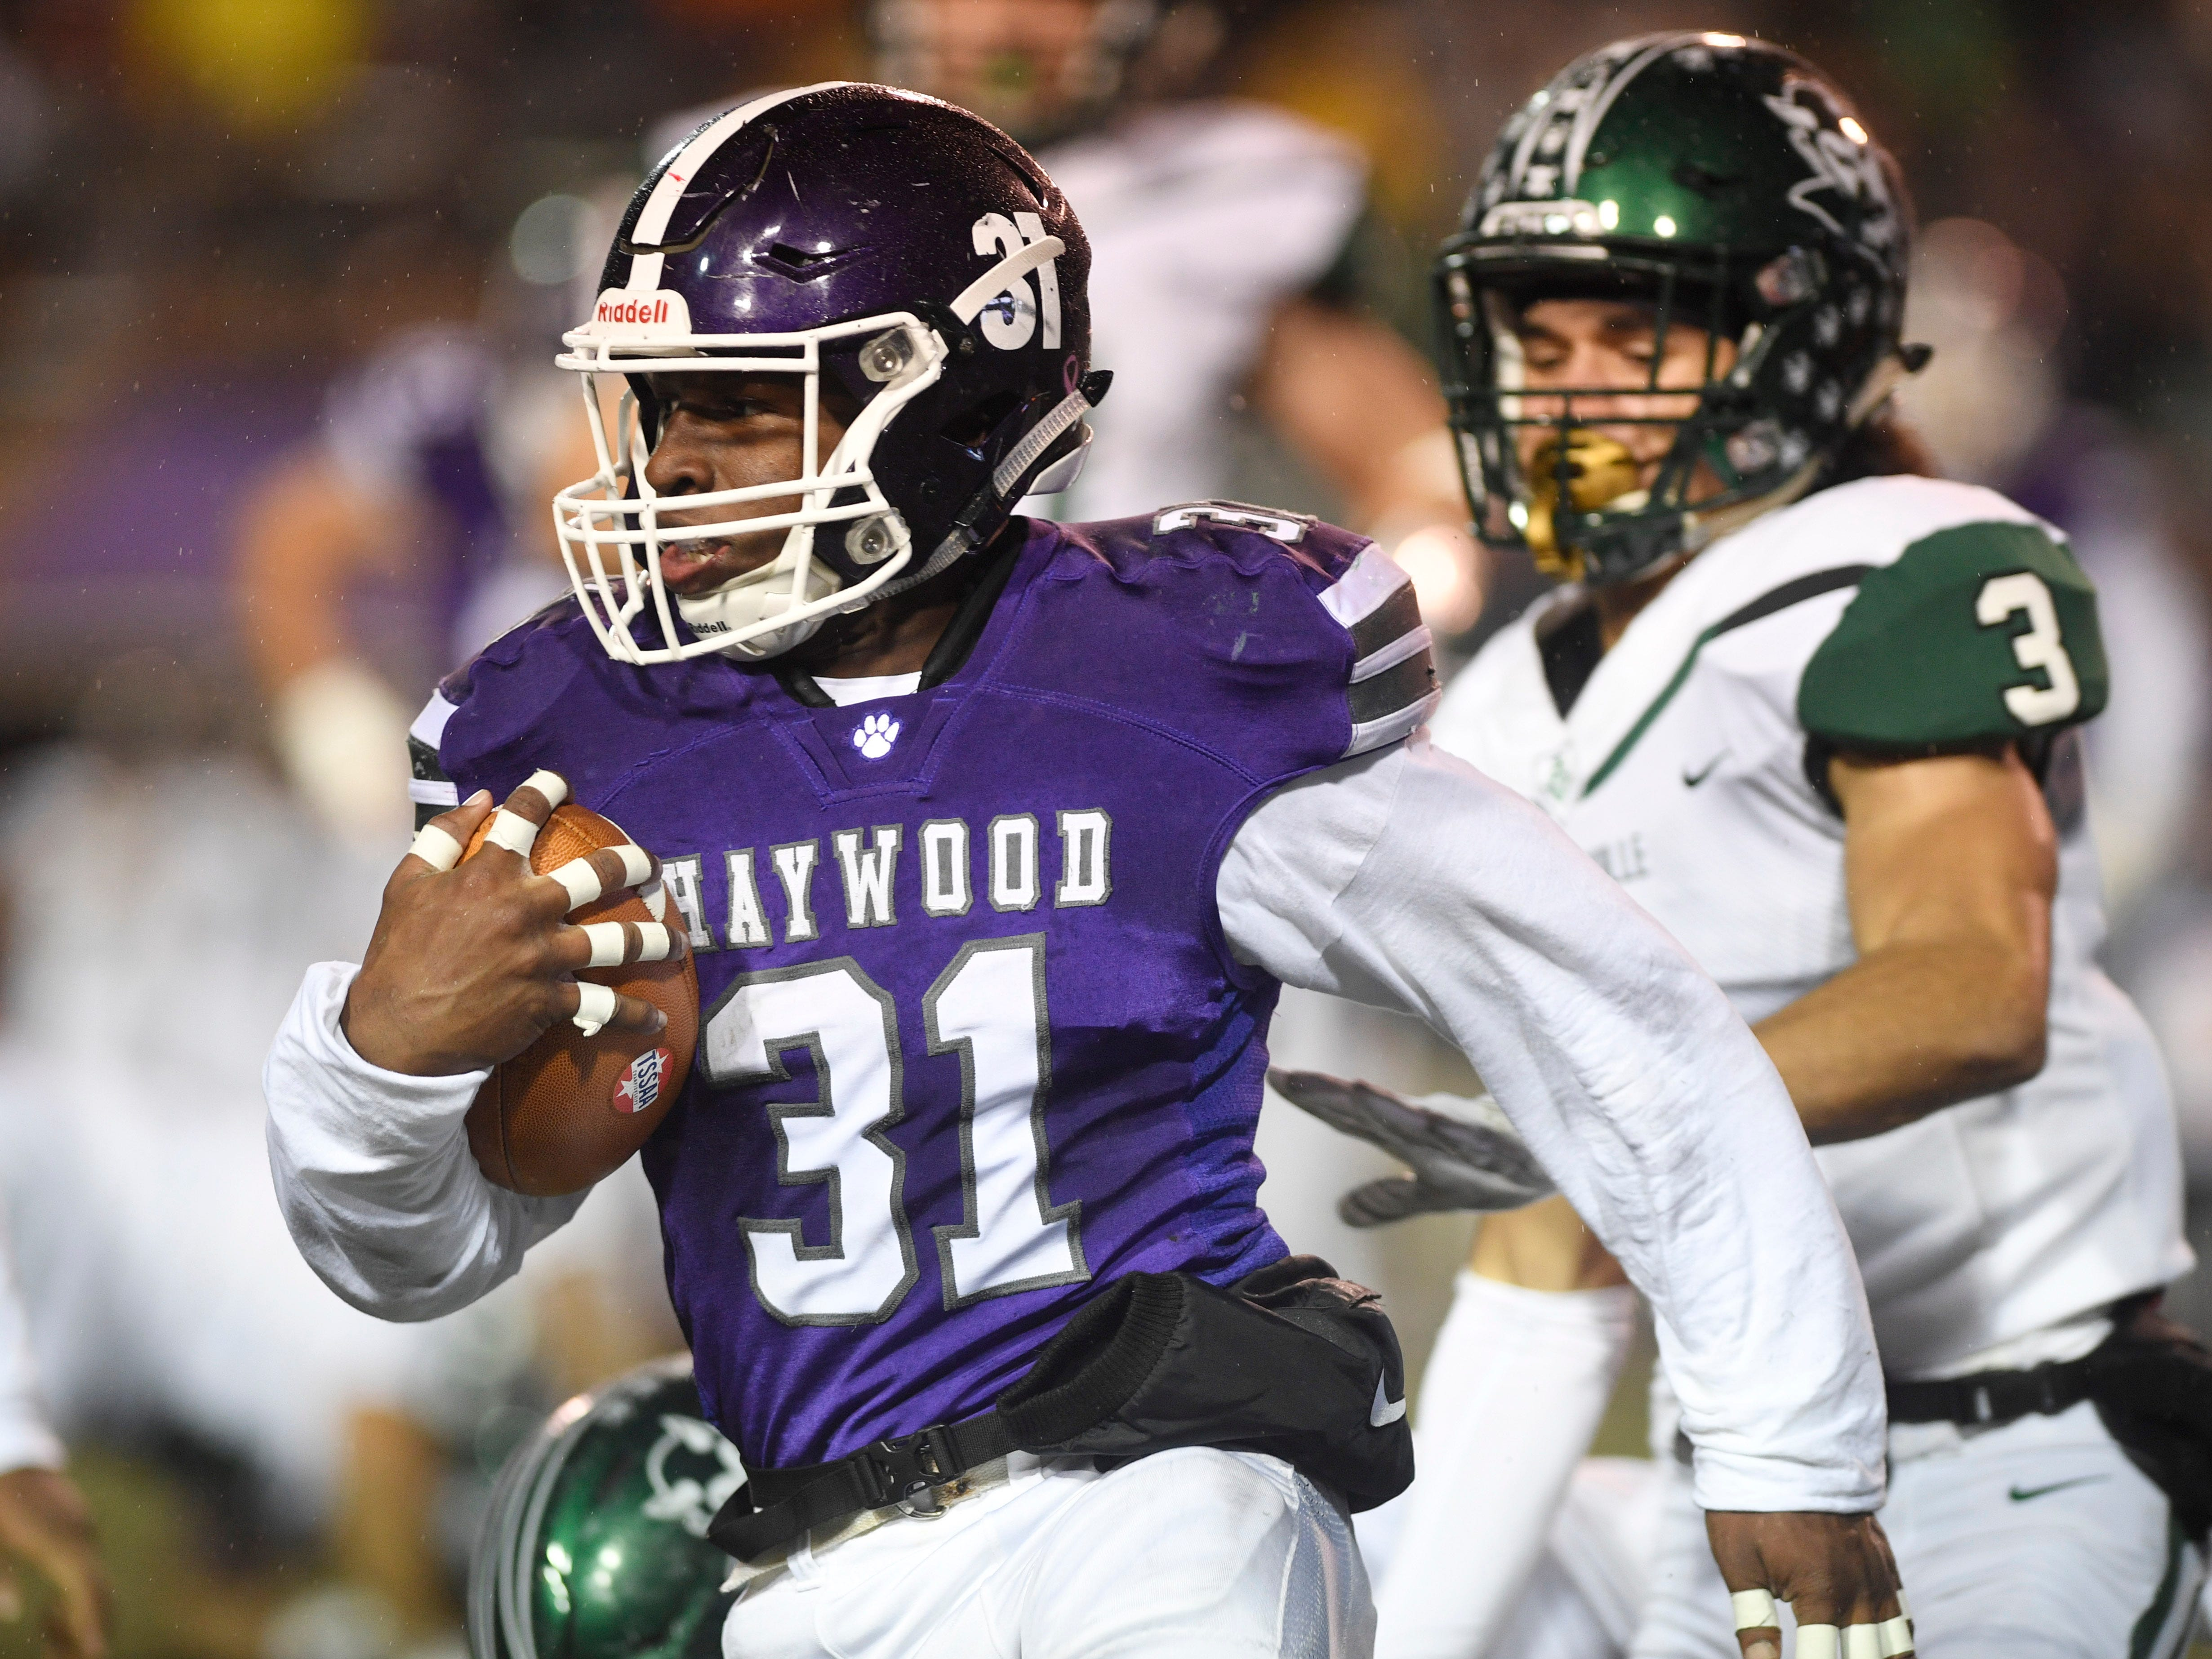 Haywood's  Decourtney Reed (31) gains yards in the second half during the Class 4A BlueCross Bowl state championship at Tennessee Tech's Tucker Stadium in Cookeville, Tenn., on Thursday, Nov. 29, 2018.